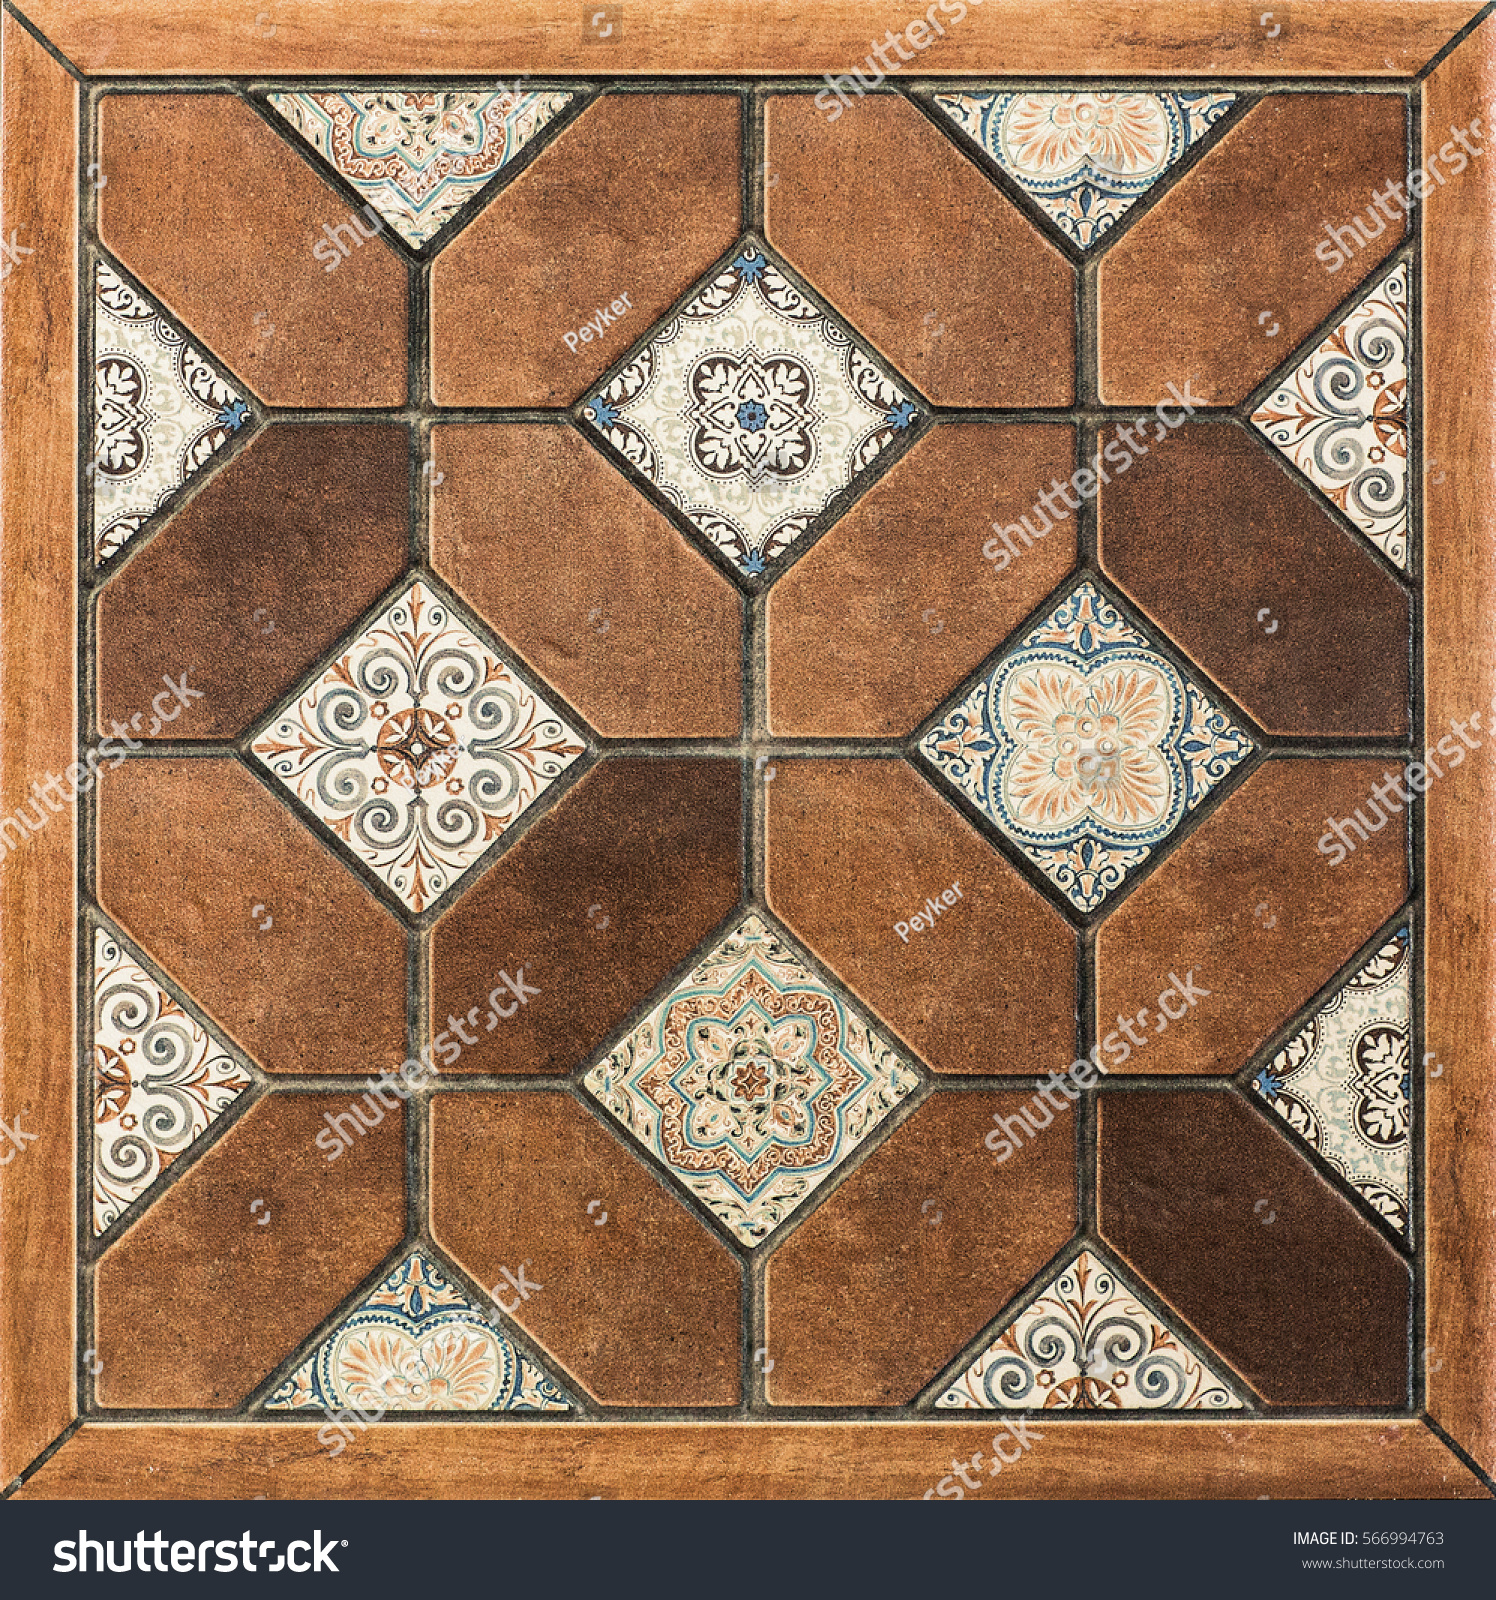 Mosaic floor tile designs